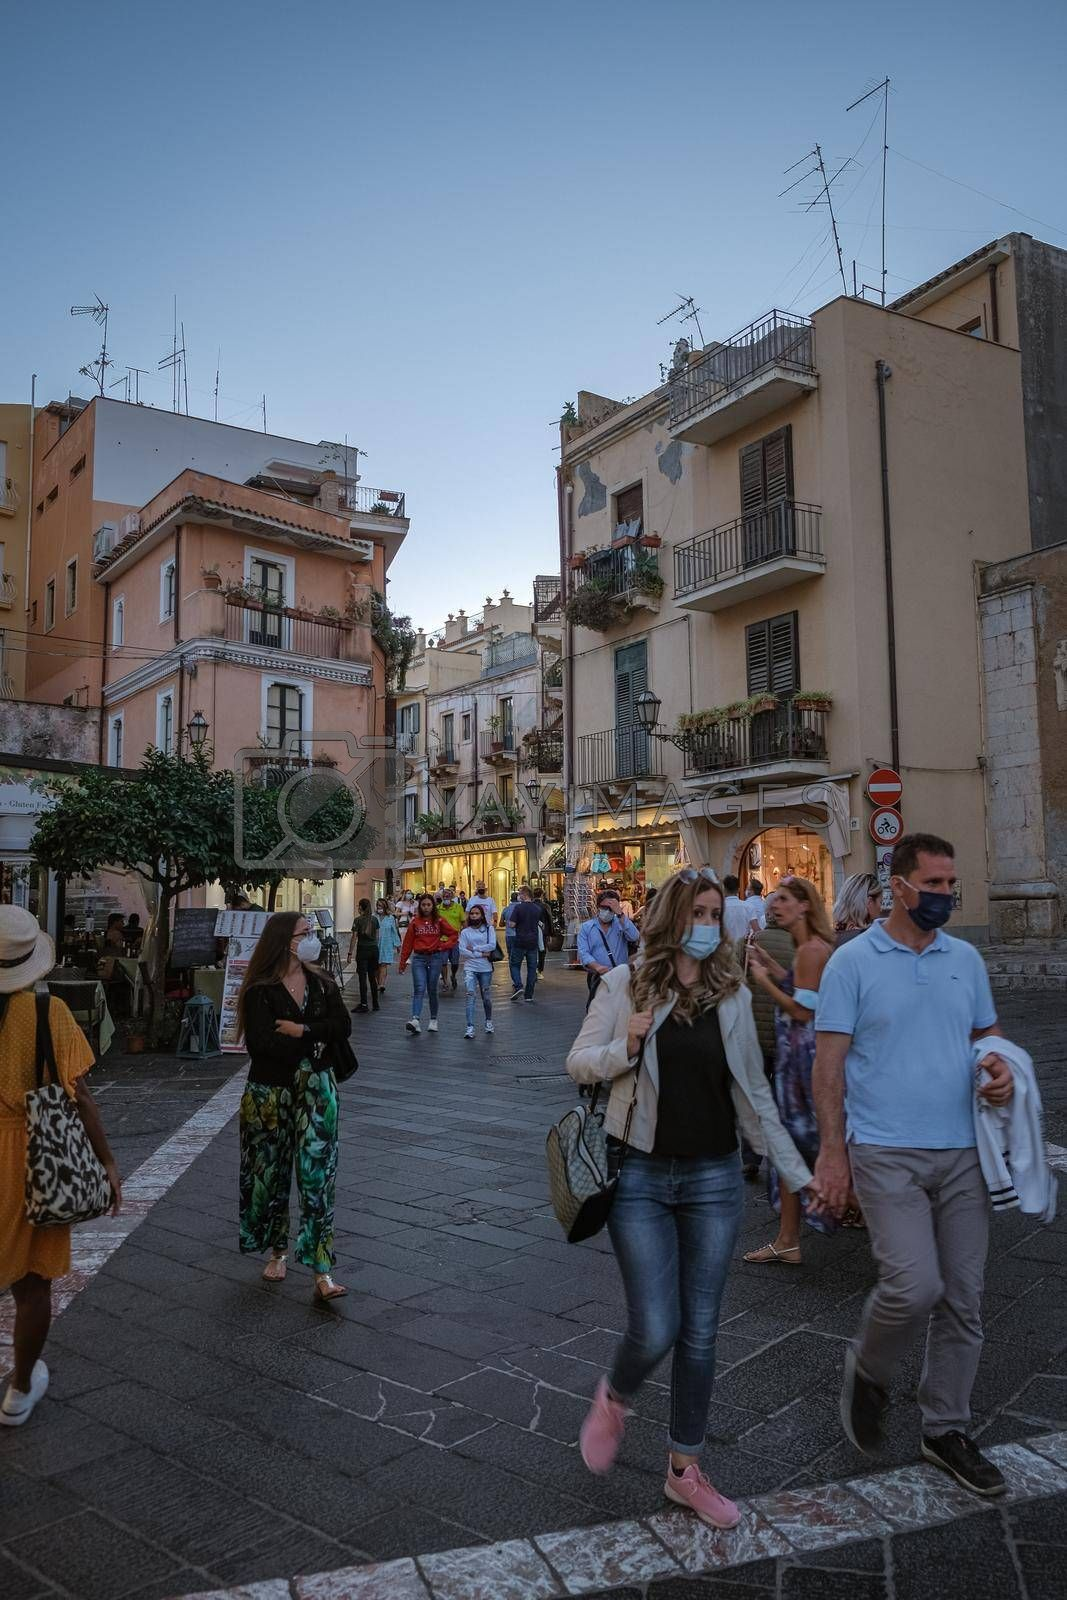 Royalty free image of Taormina Sicily , people on the streets using fase mask during the pandemic Corona Covid 19 virus outbreak by fokkebok